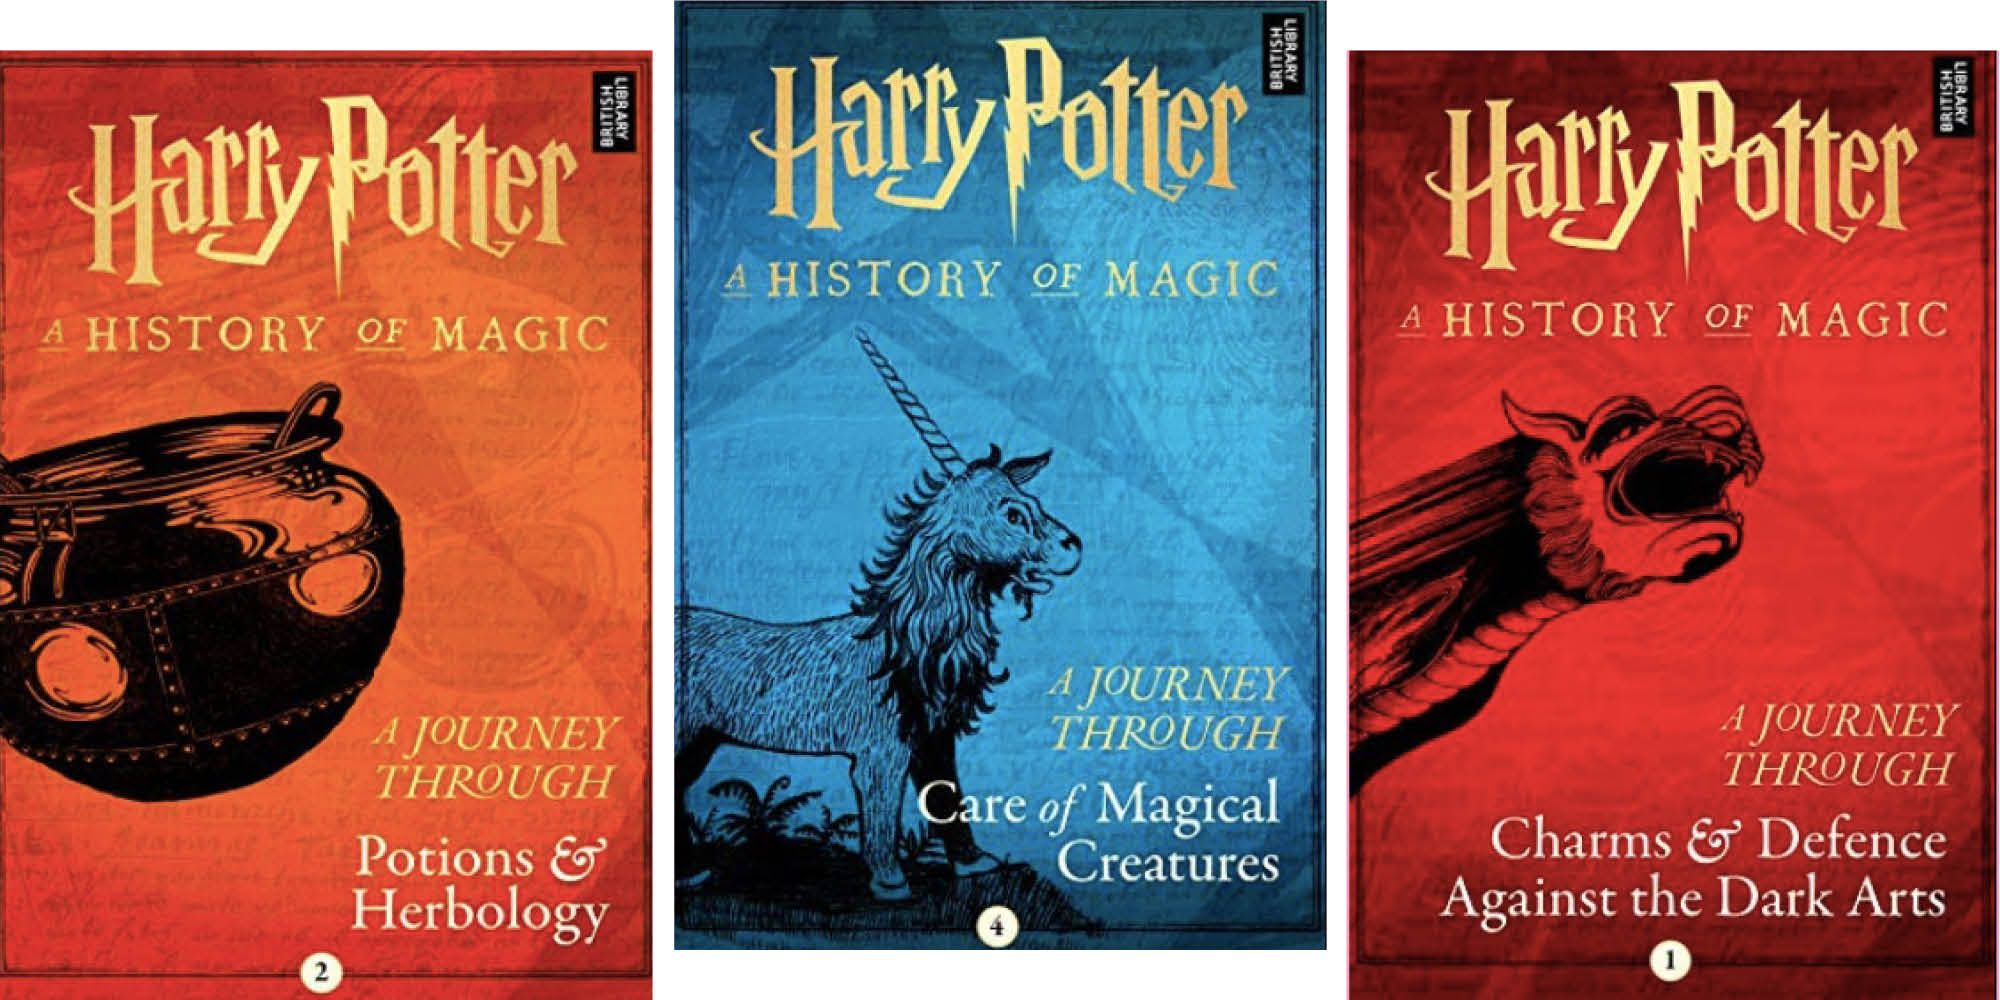 Jk Rowling New Book 2020 JK Rowling is releasing 4 new Harry Potter books next month